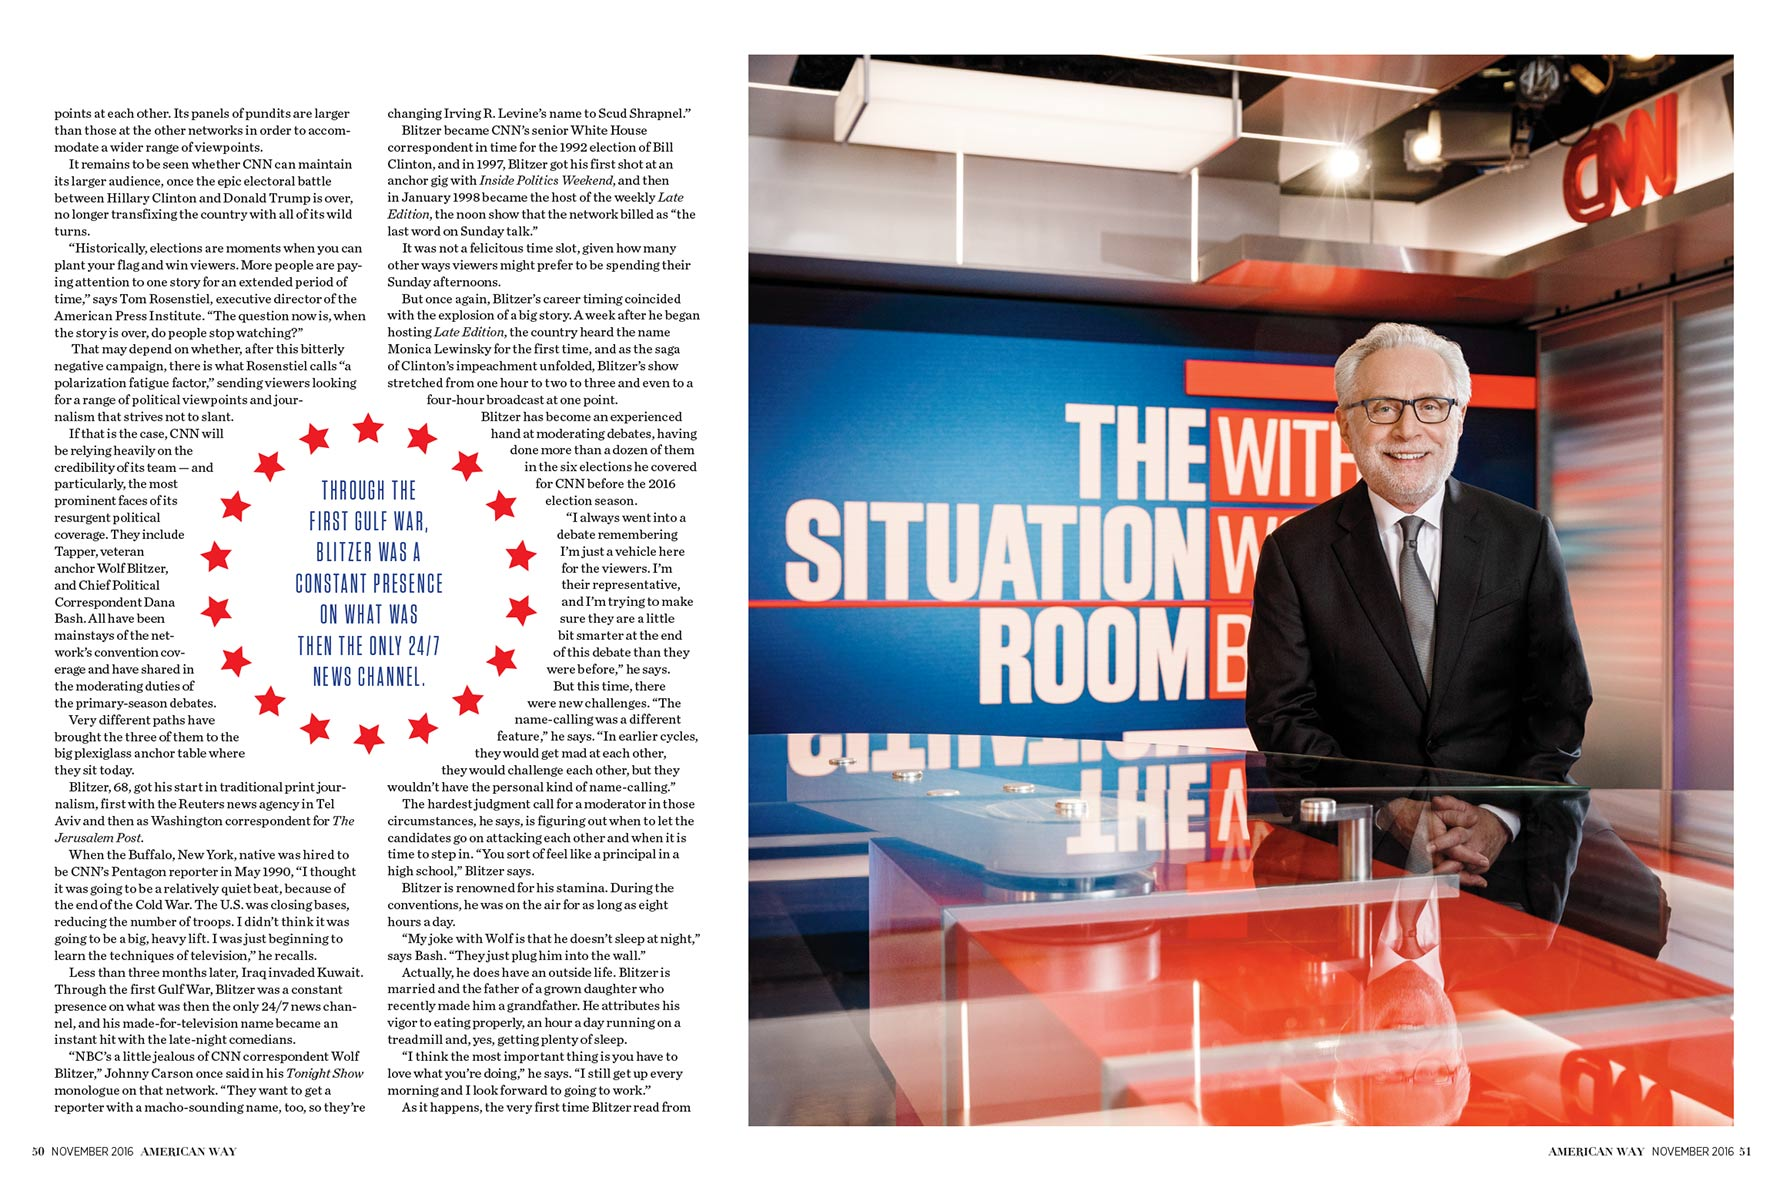 American Way / Wolf Blitzer